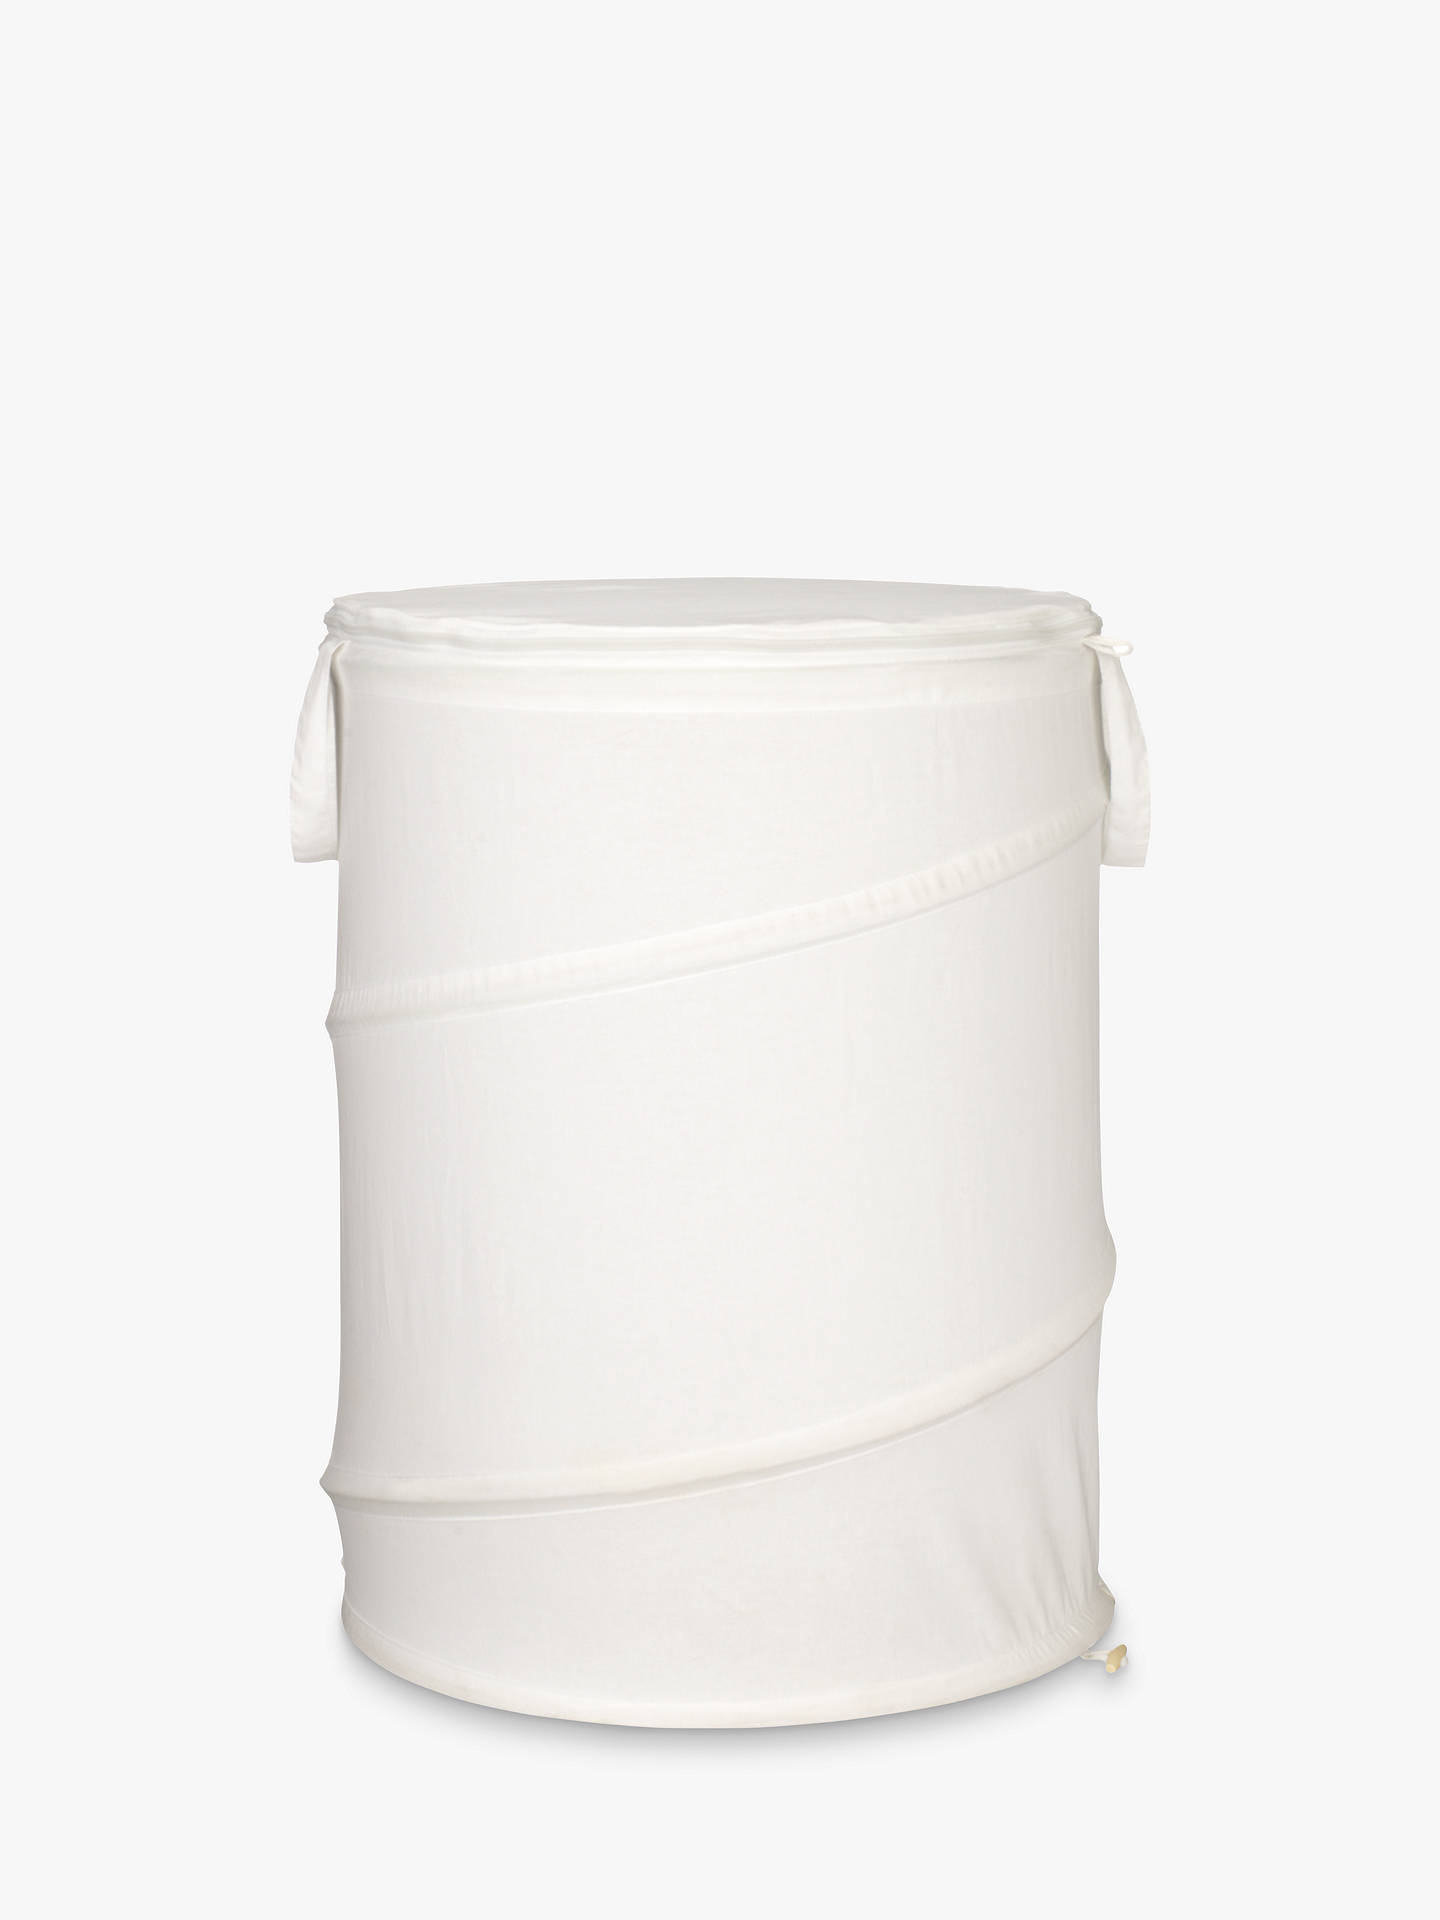 BuyJohn Lewis & Partners Cotton Pop-Up Laundry Hamper, Bone, Small Online at johnlewis.com